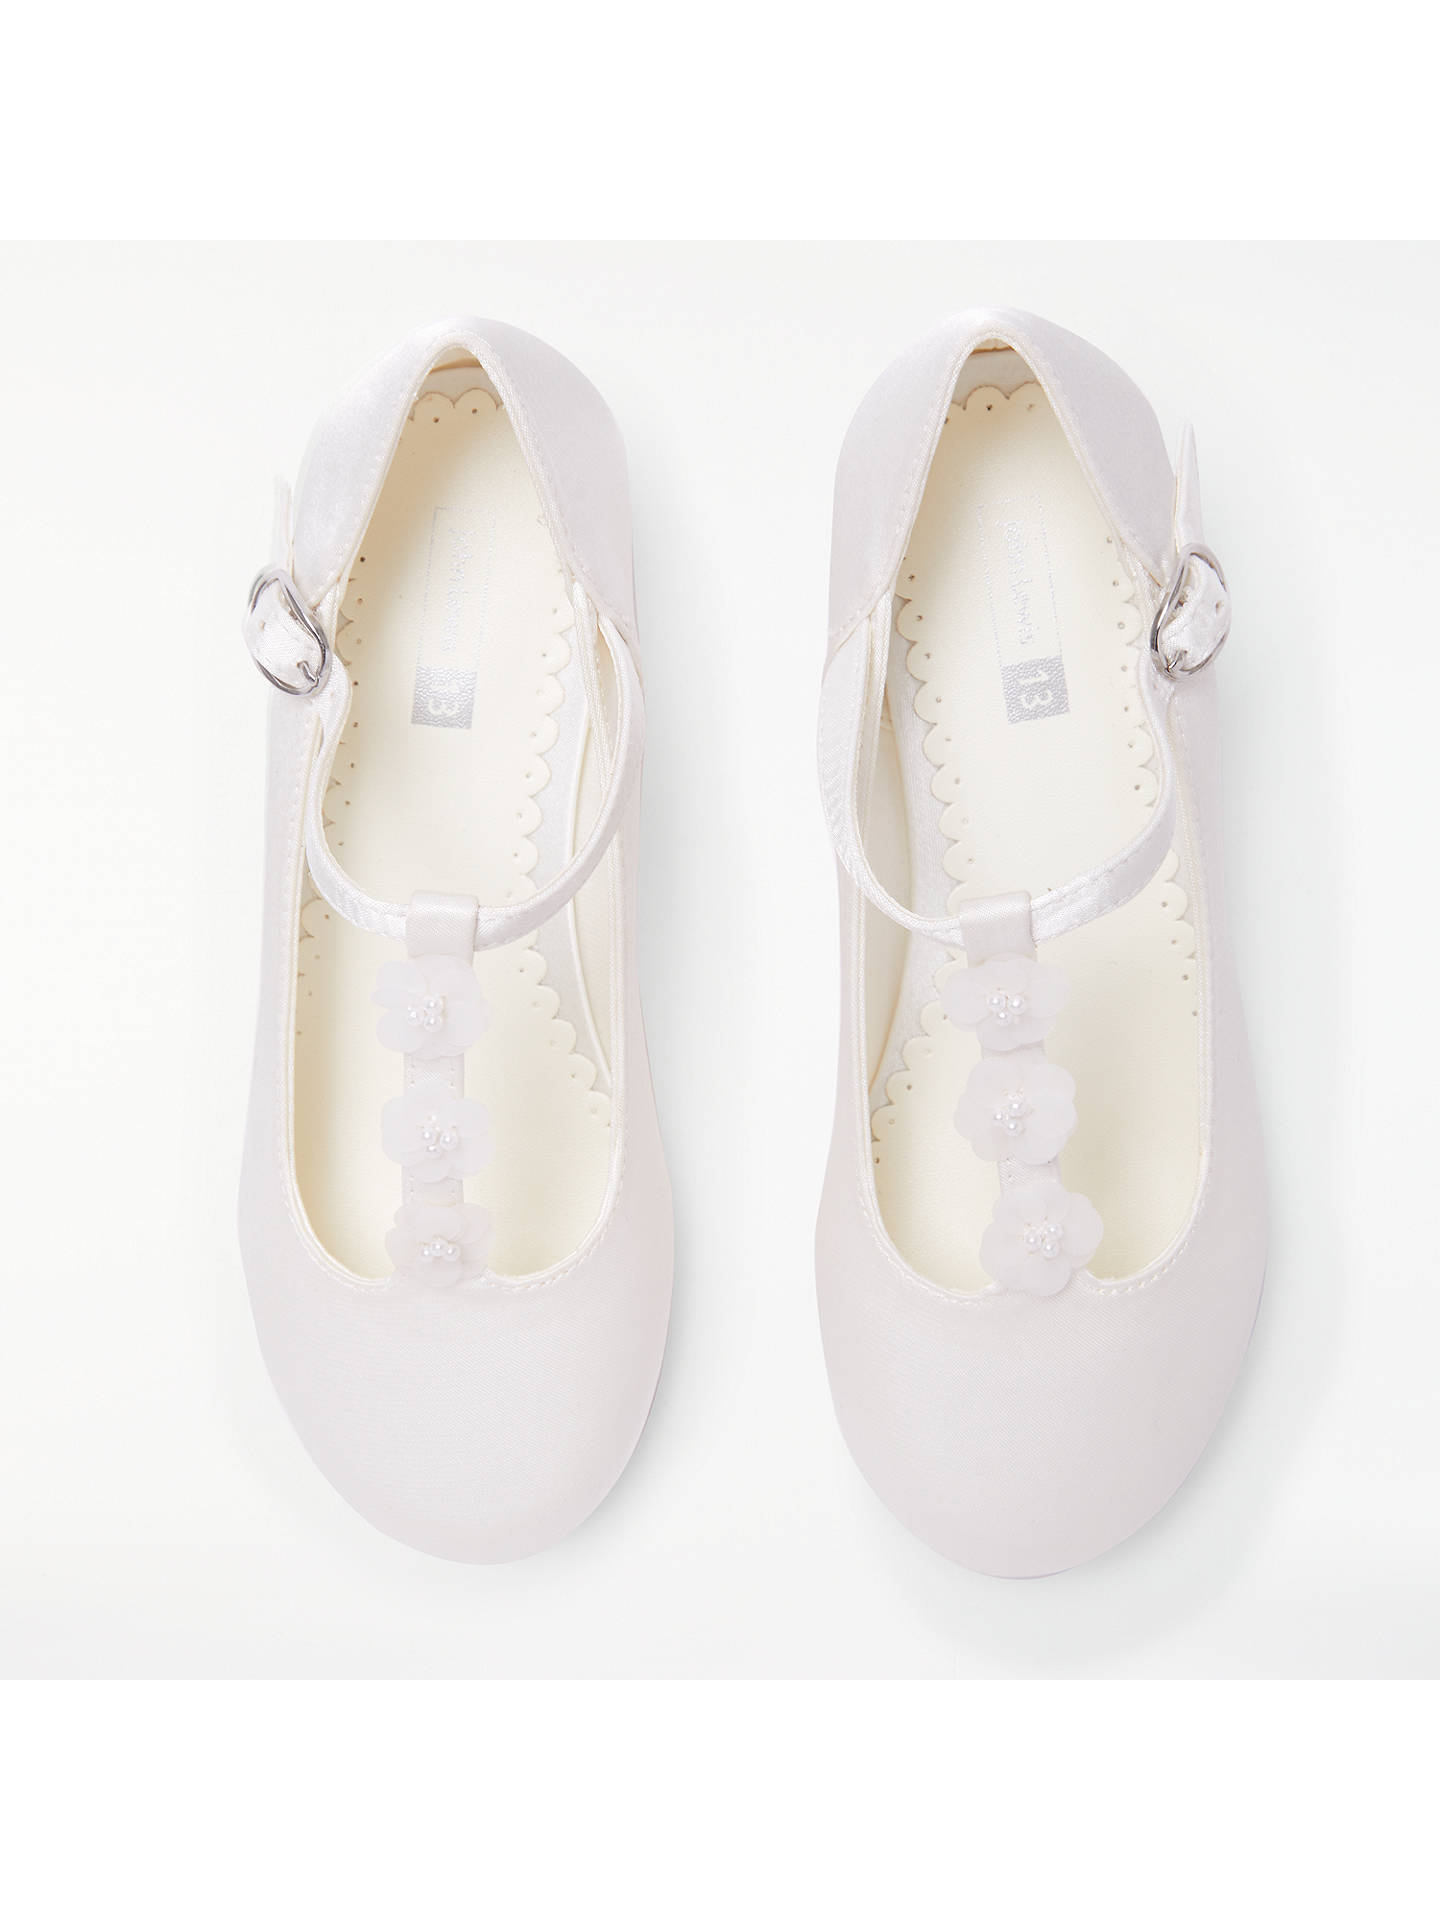 BuyJohn Lewis & Partners Children's Flower Detail Heeled Bridesmaid Shoes, Ivory, 1 Online at johnlewis.com